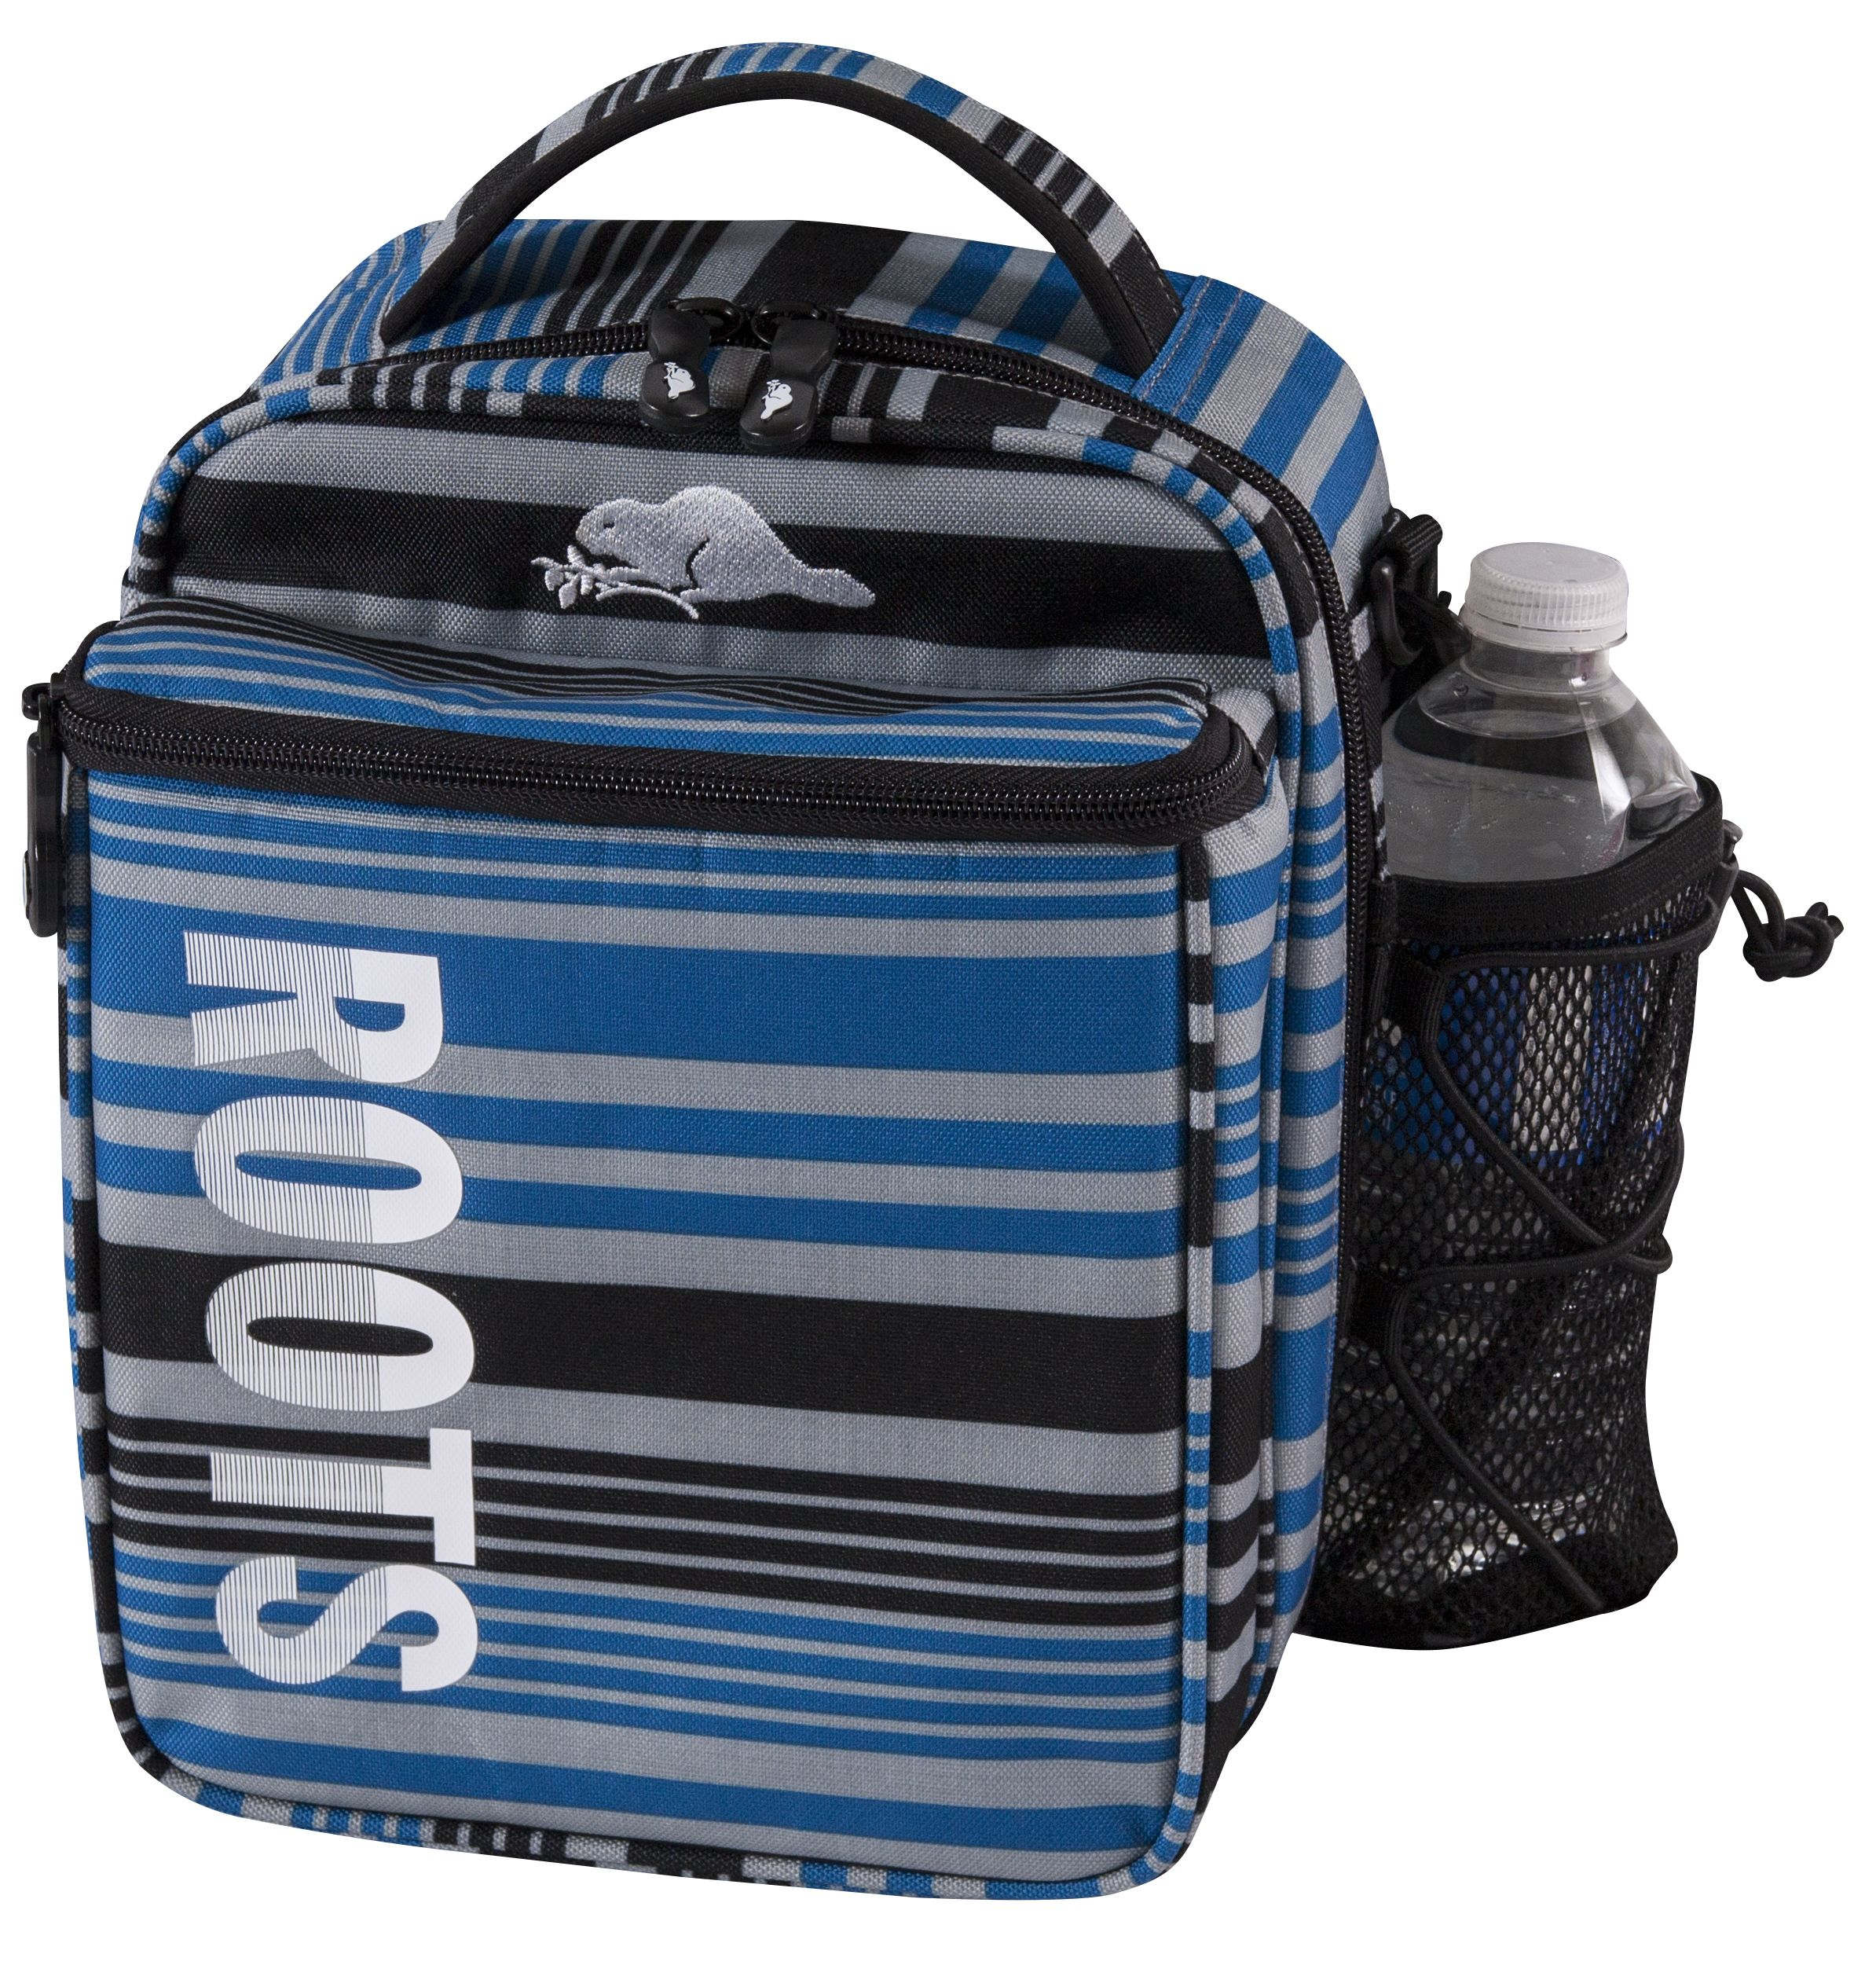 Roots Cooler Bag With Plastic Containers And Ice Pack Lunch Box